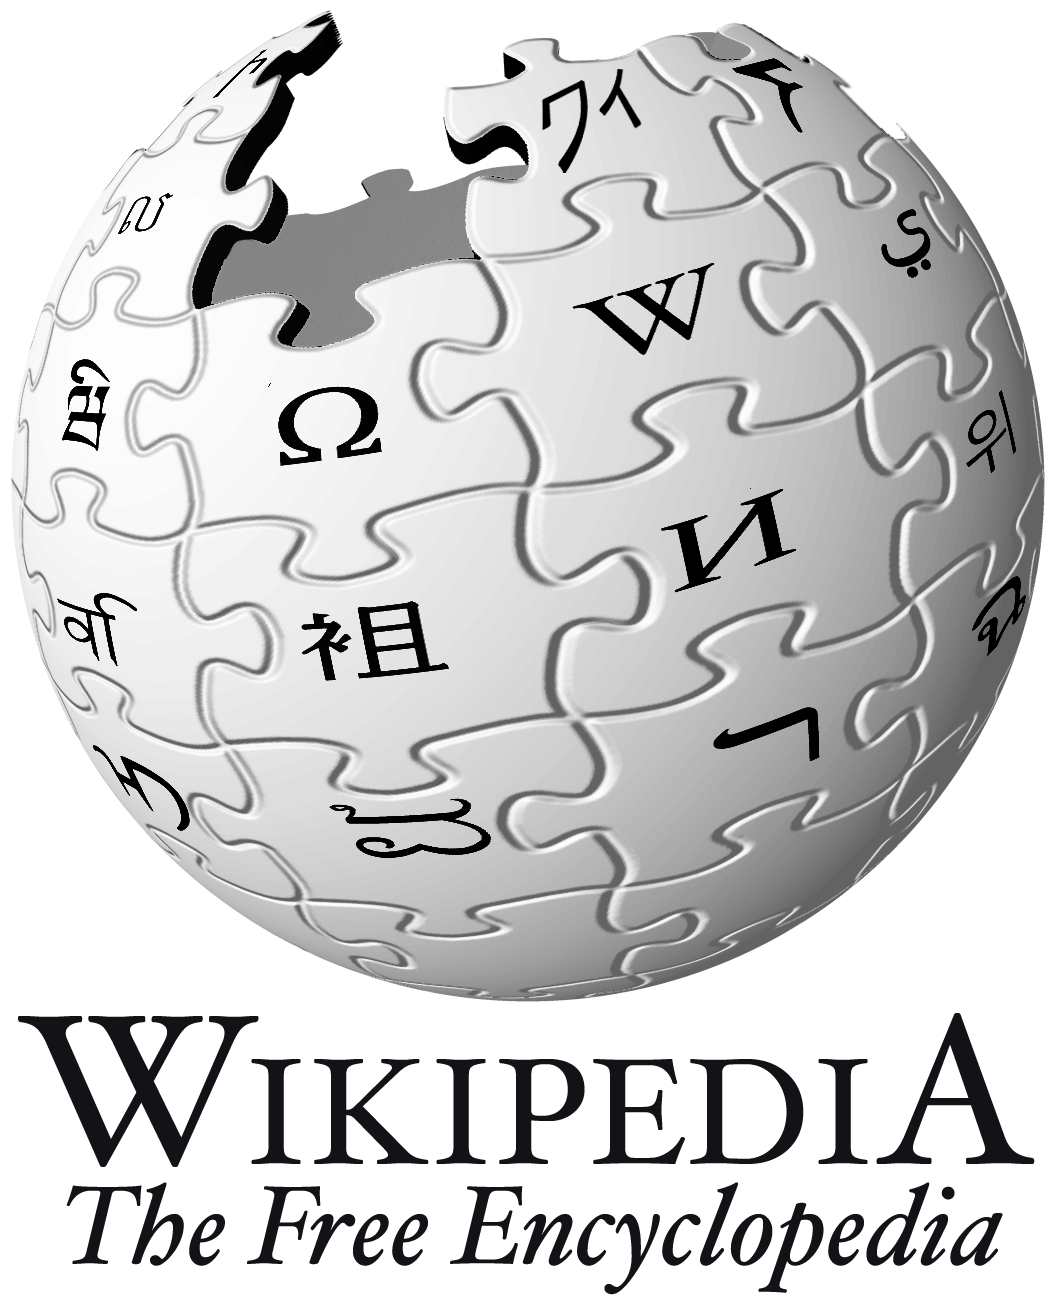 1406724326_Wikipedia-logo-en-big